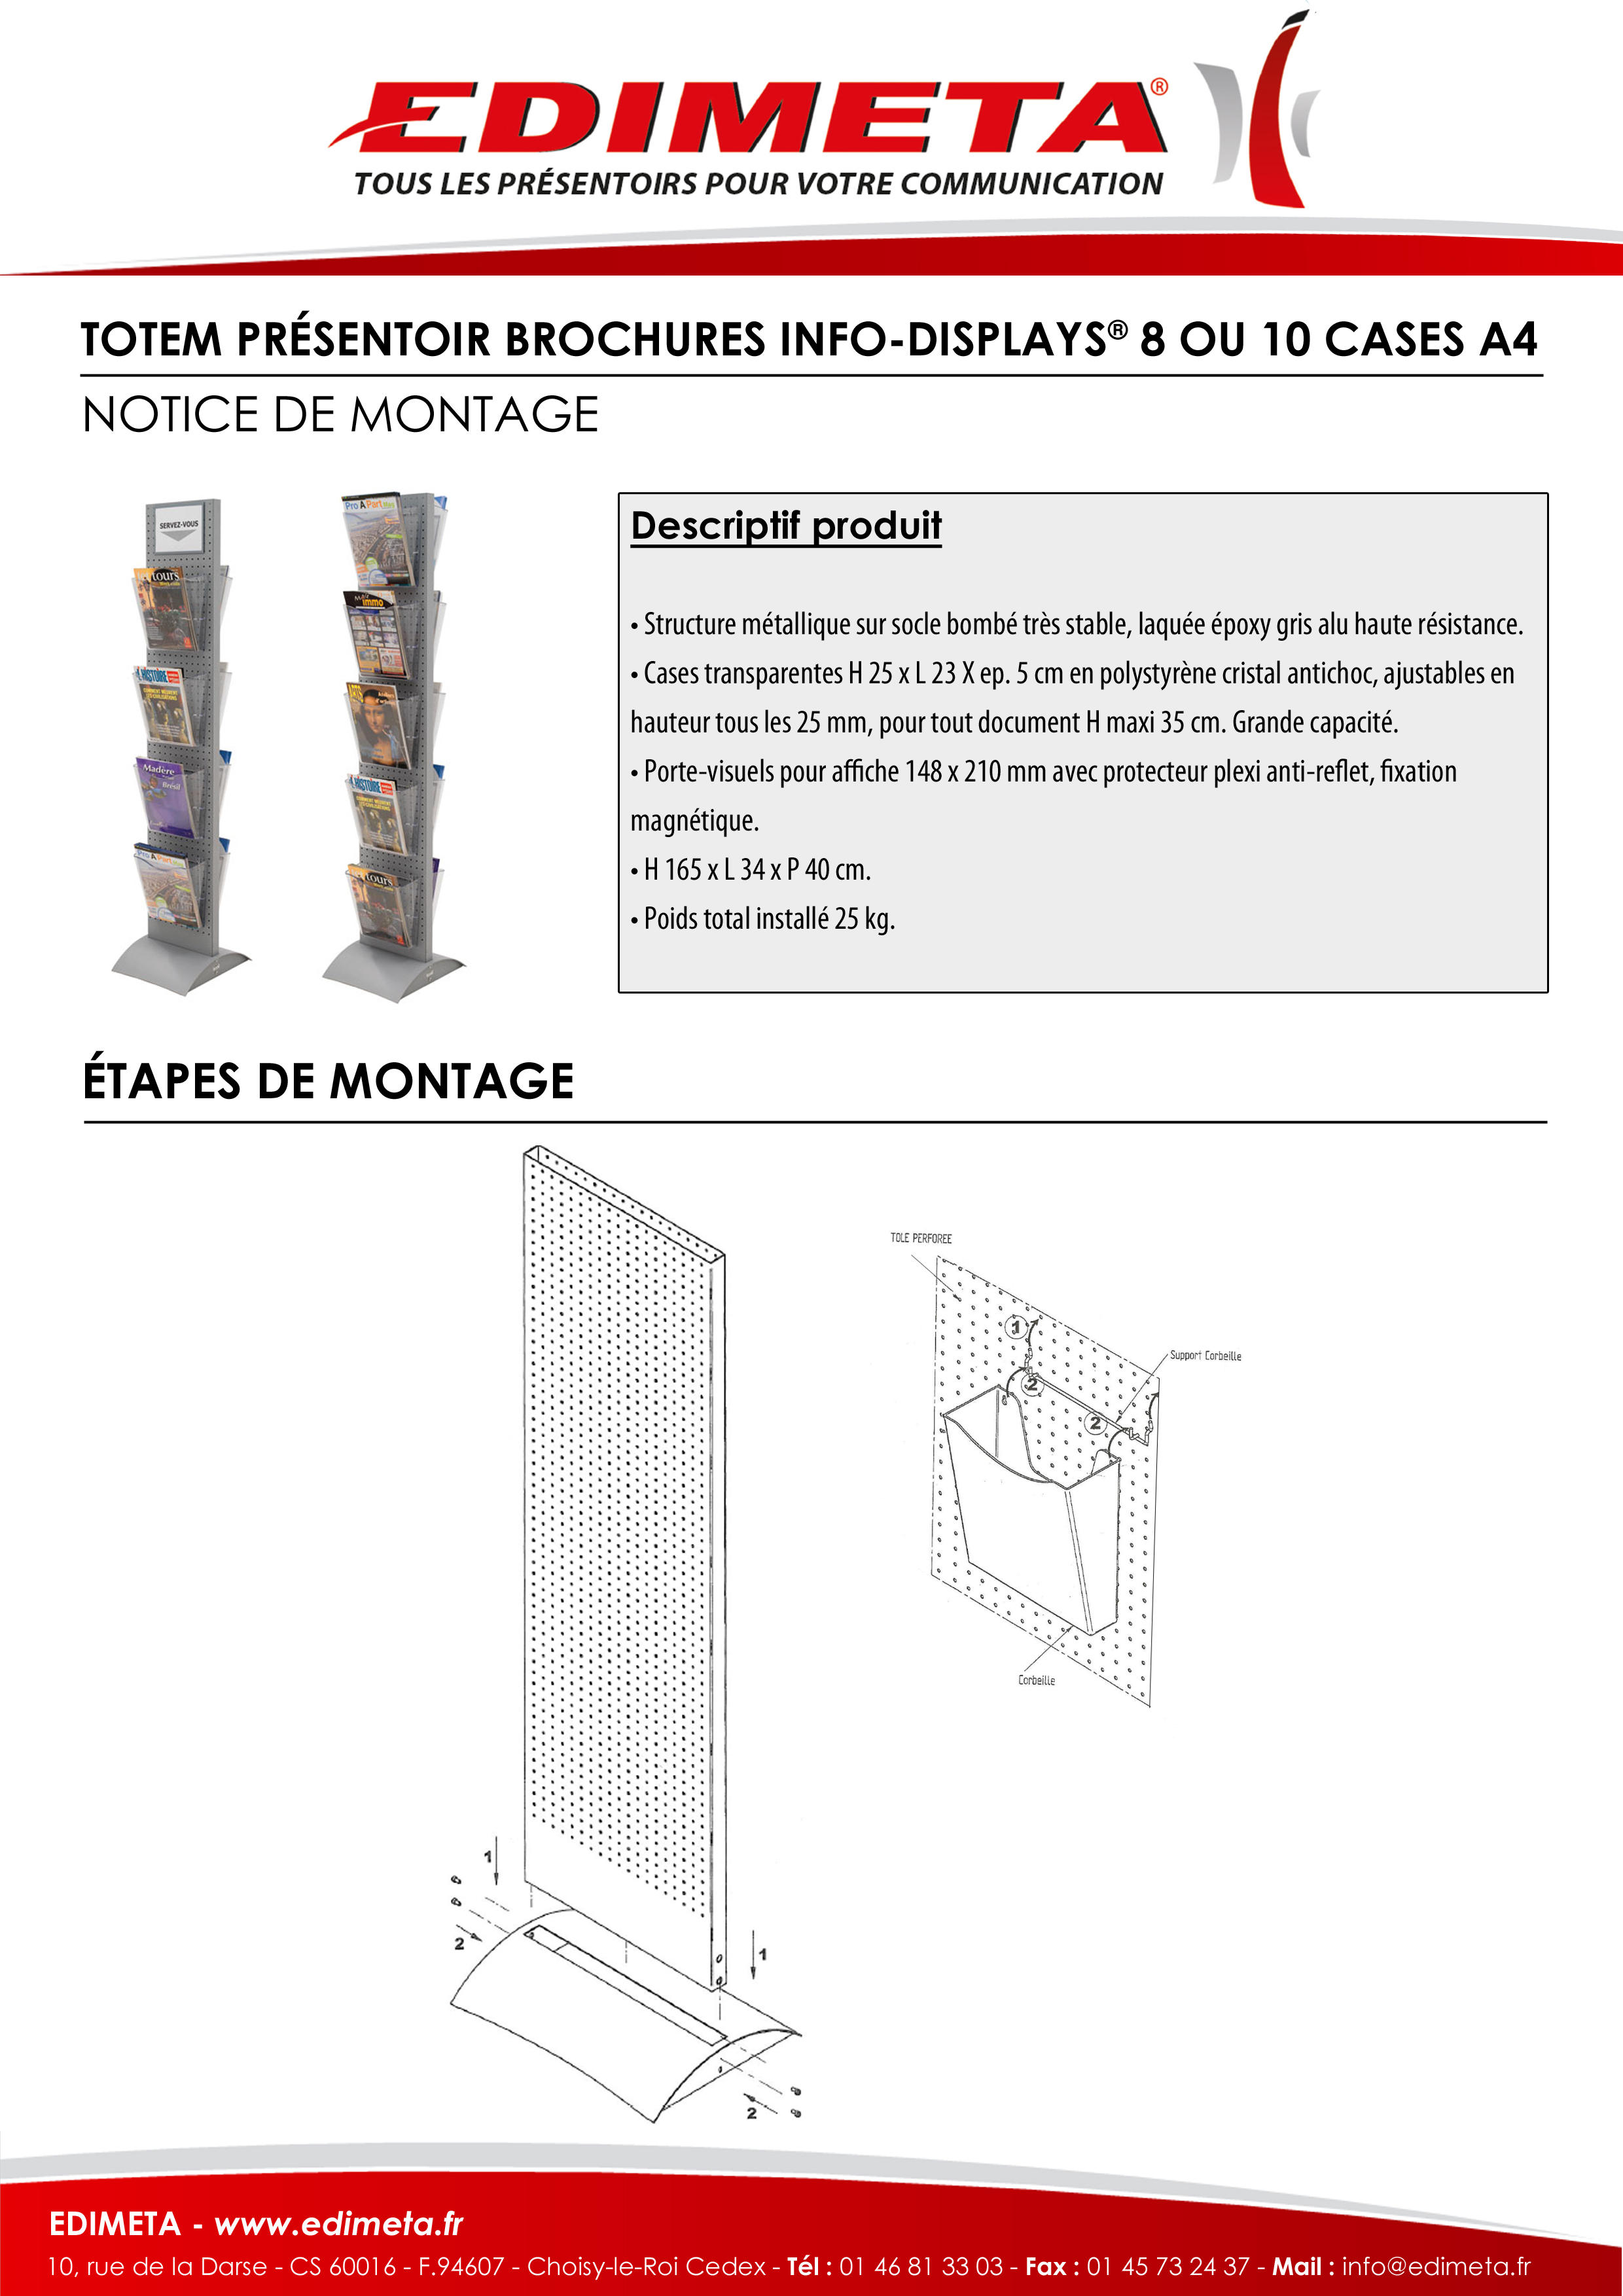 NOTICE DE MONTAGE : TOTEM PRÉSENTOIR BROCHURES INFO-DISPLAYS® 8 OU 10 CASES A4